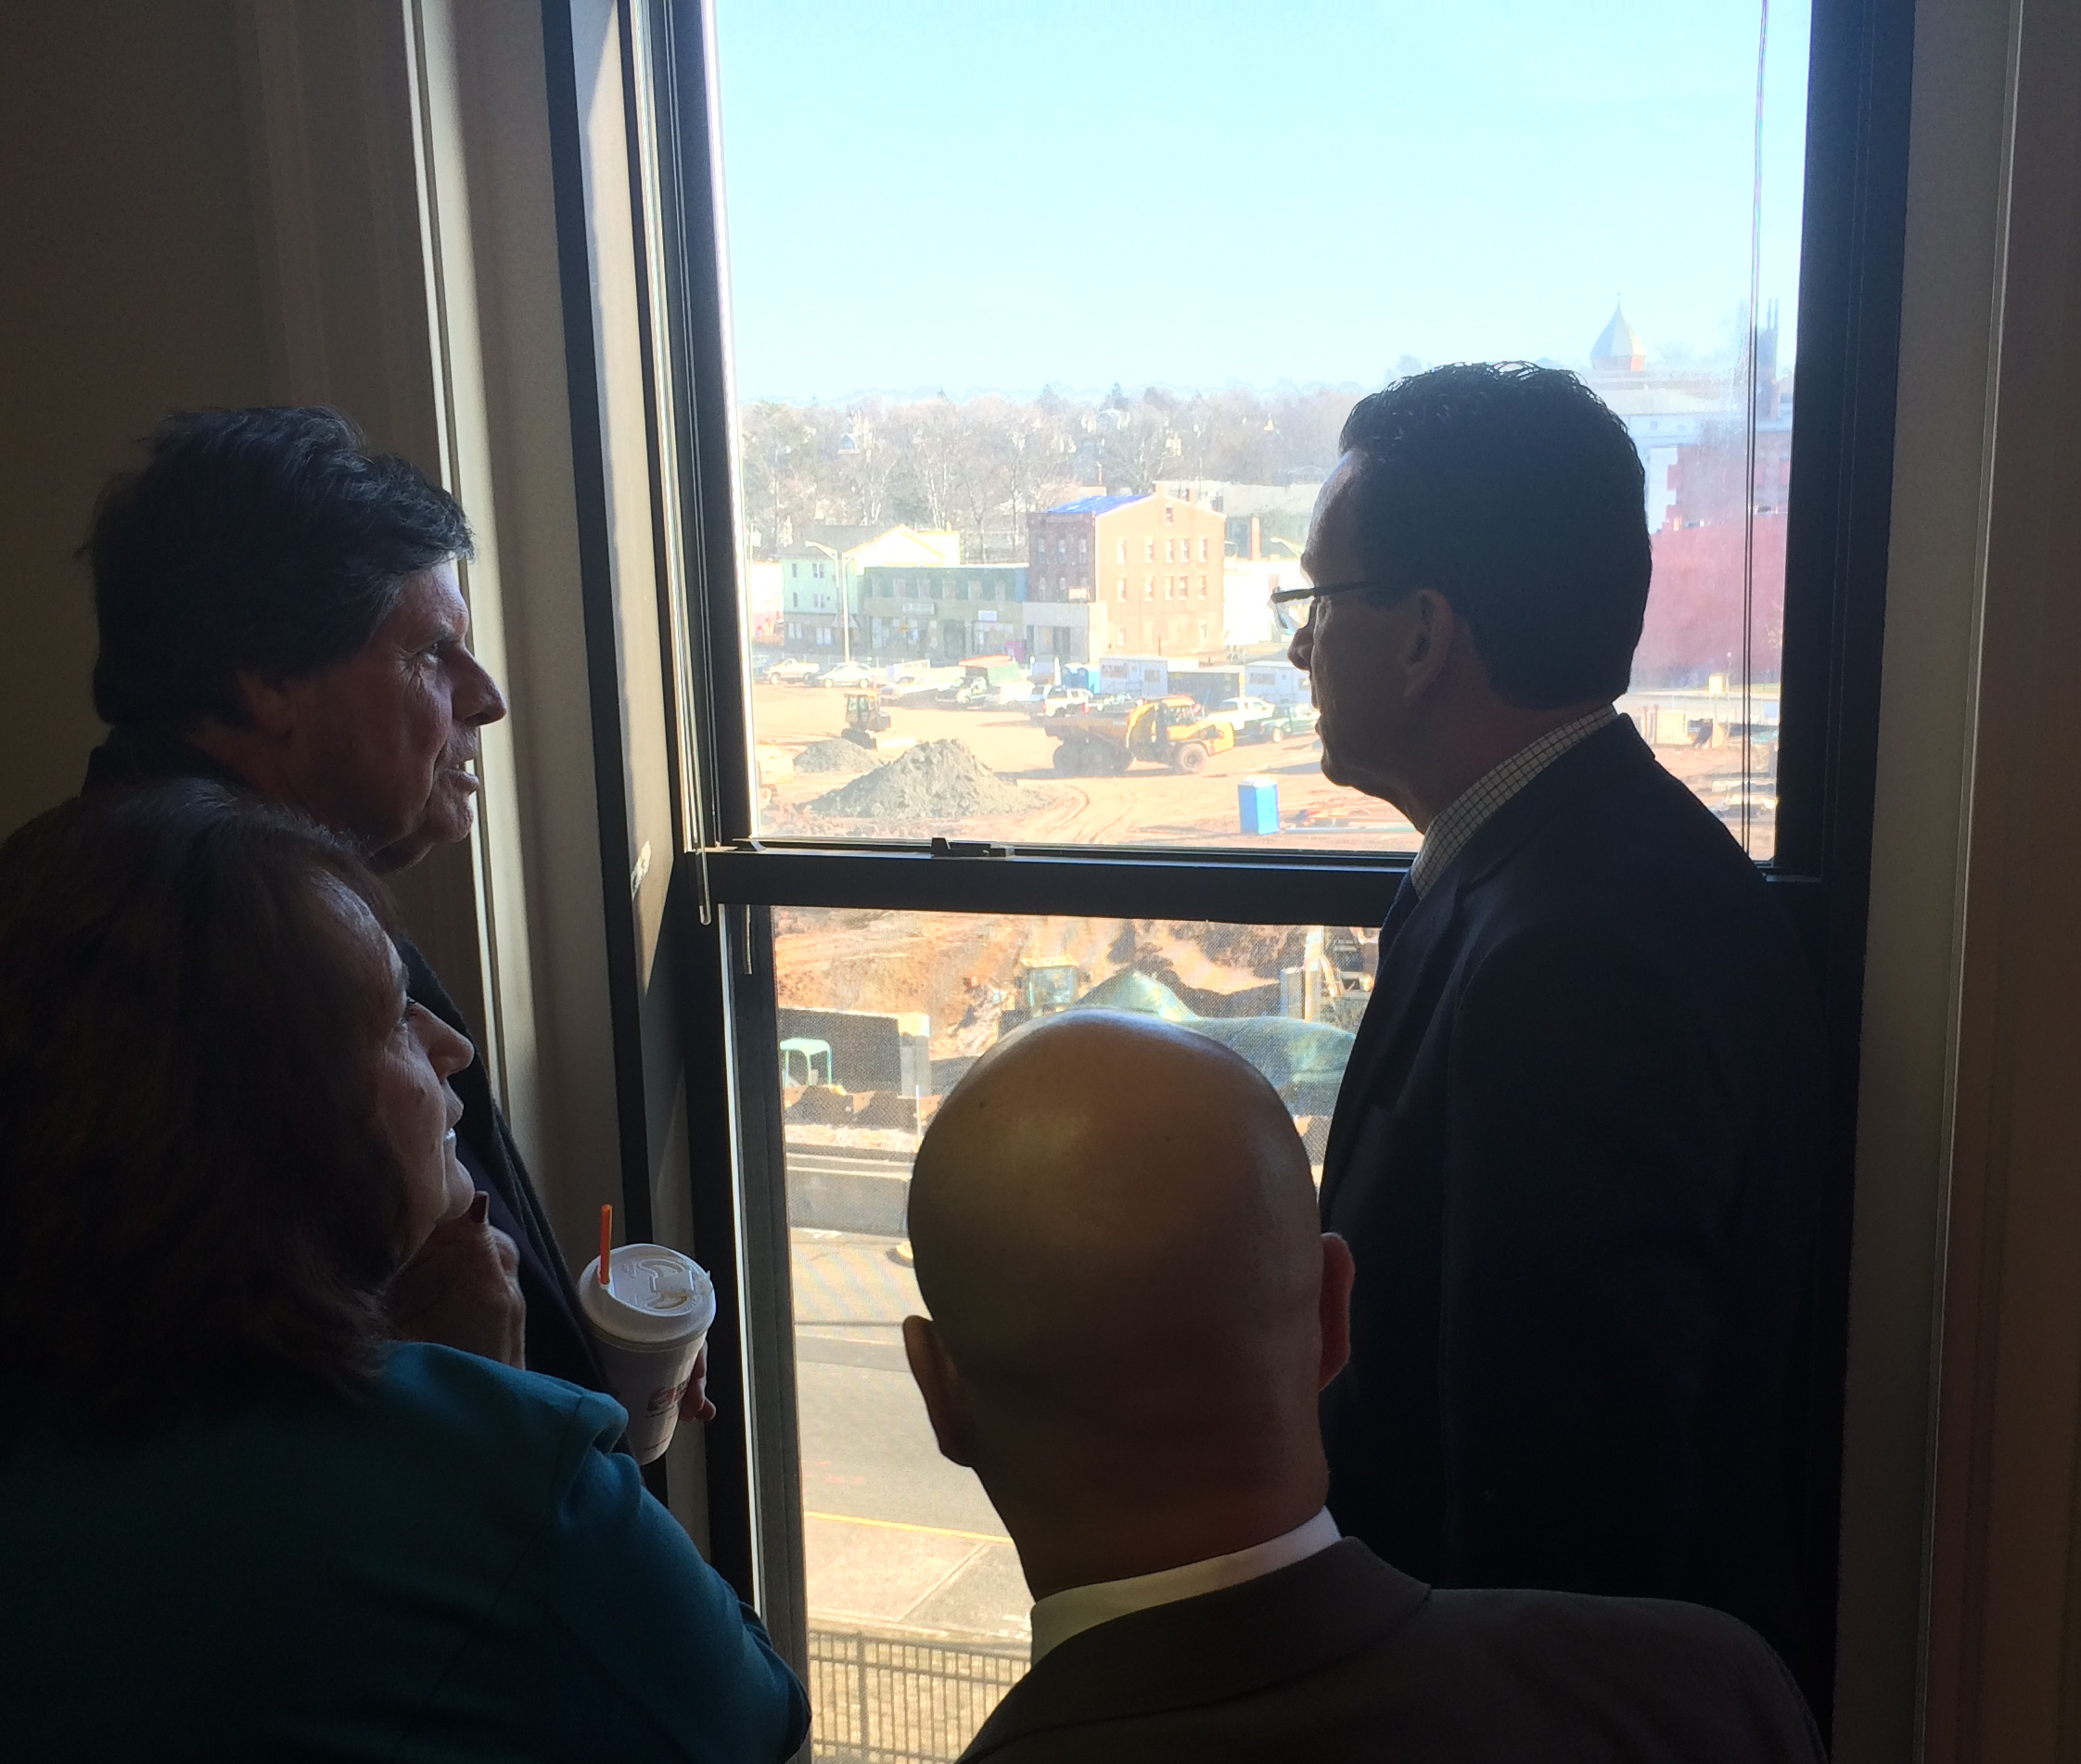 Gov. Dannel P. Malloy and Rep. Buddy Altobello looking out on the site of a Meriden rail, park and flood-control project.